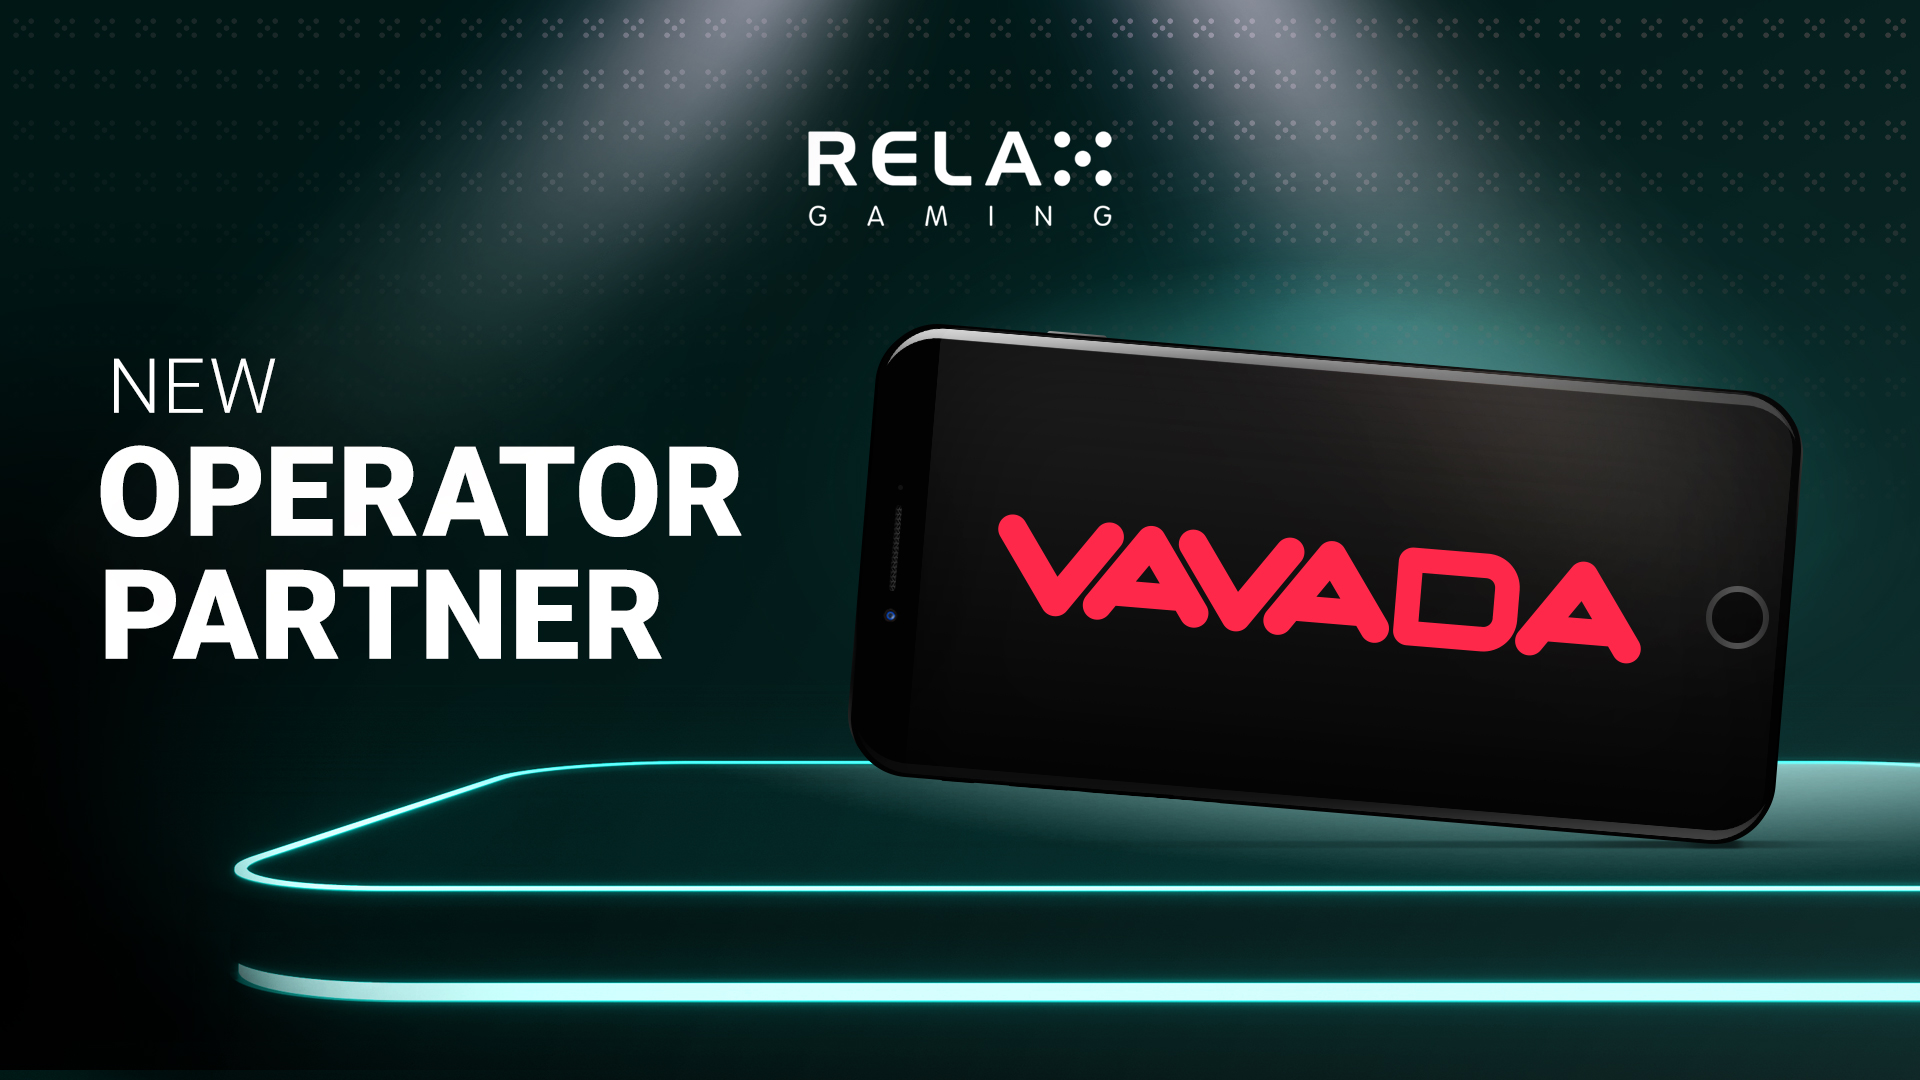 Relax Gaming partners with Vavada in distribution deal